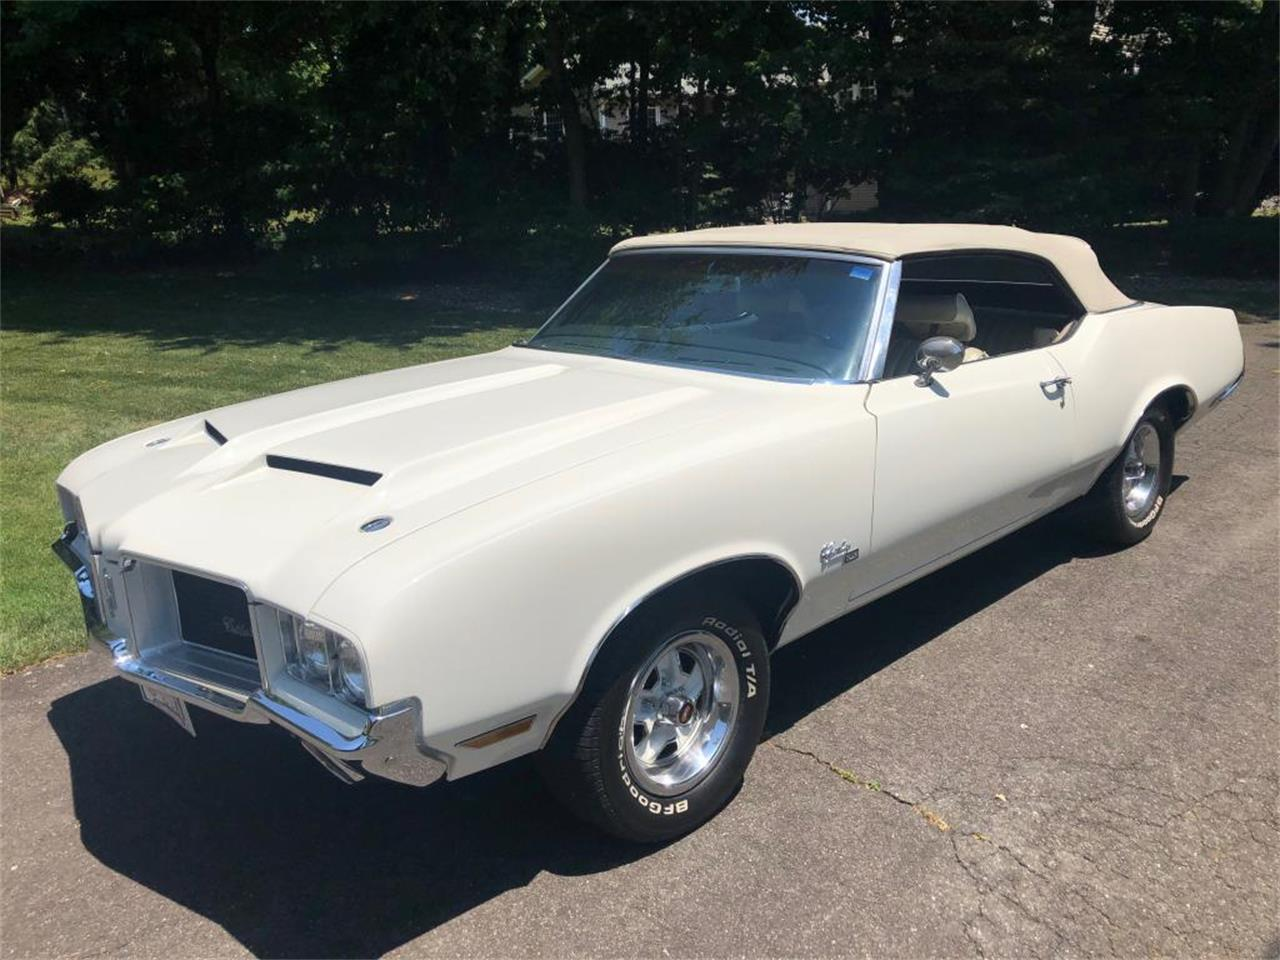 1971 Oldsmobile Cutlass Supreme (CC-1359925) for sale in Milford City, Connecticut